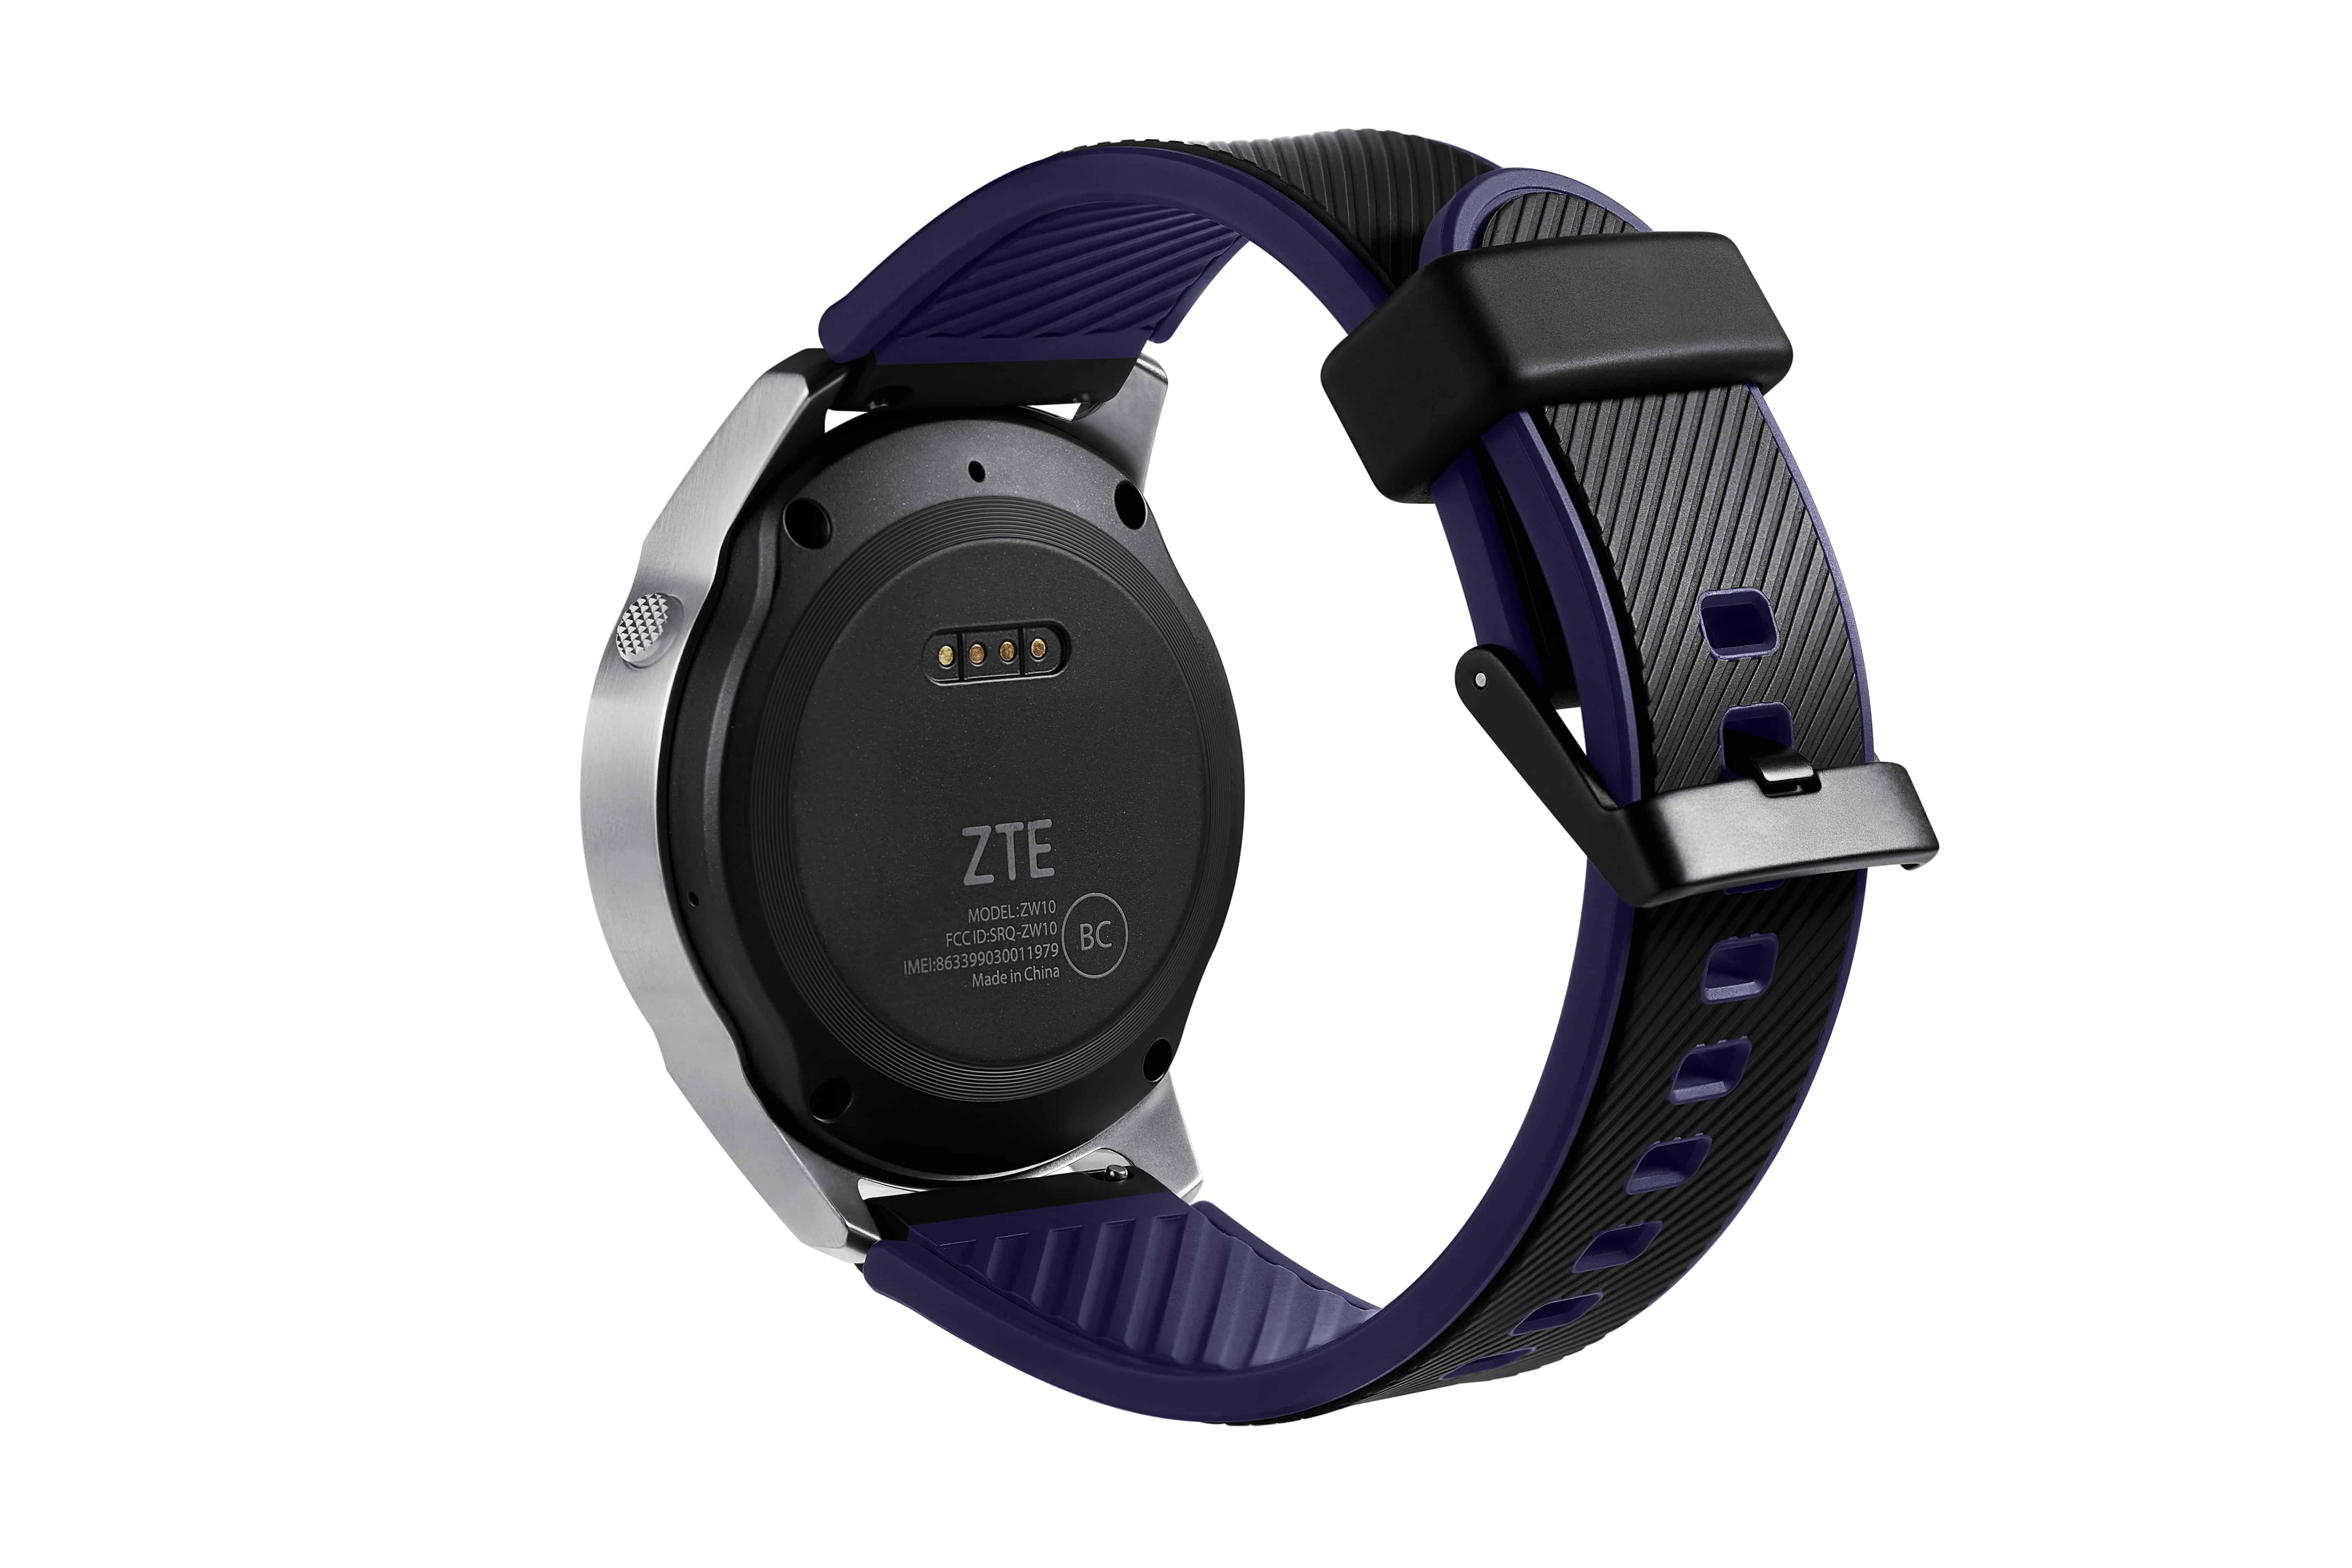 ZTE Quartz Android Wear 2.0 smartwatch - specs, photos, availability